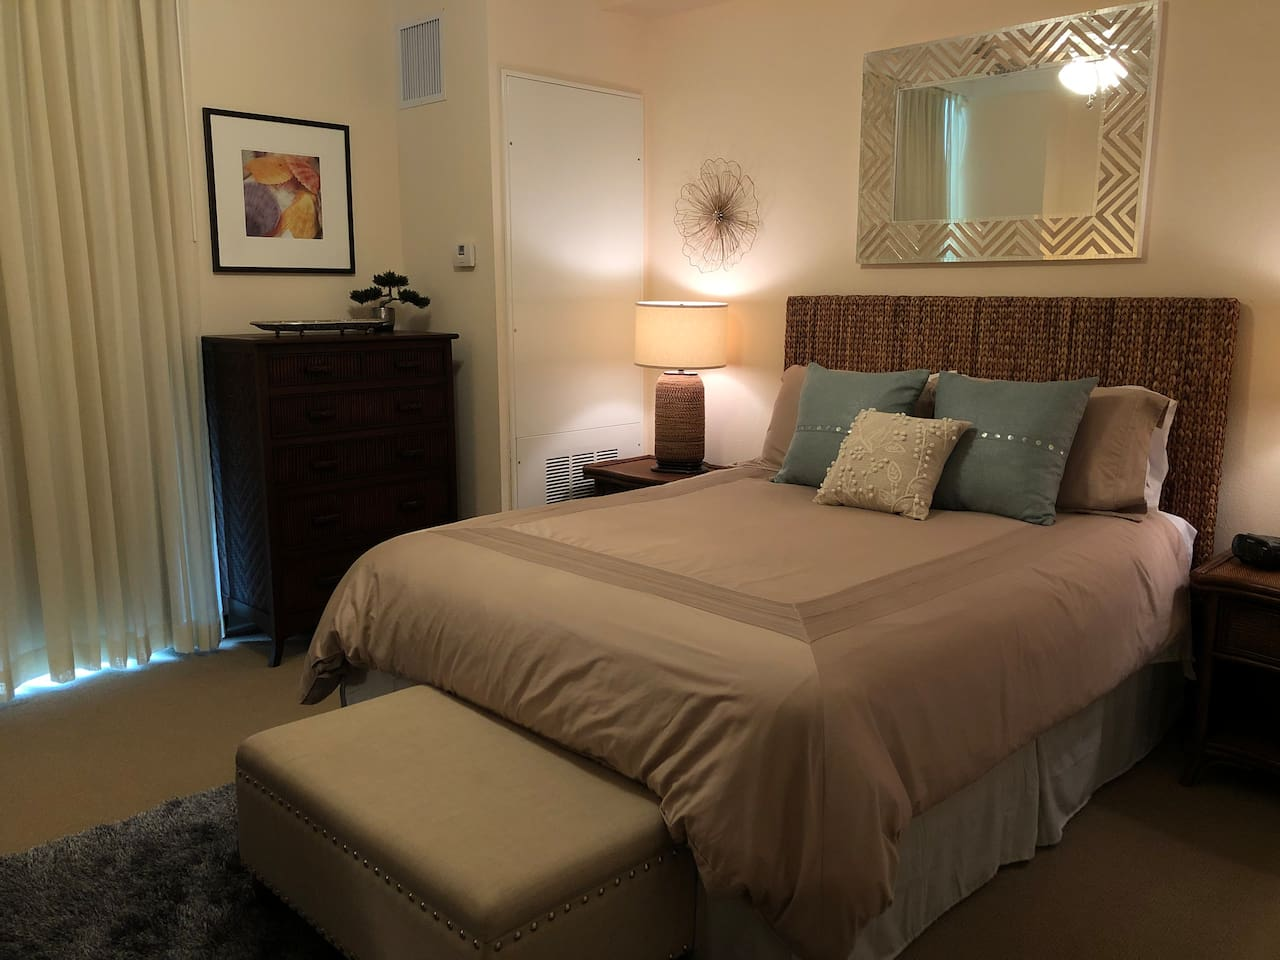 A wonderfully homey space with a comfy bed and separately controlled thermostat for total comfort.